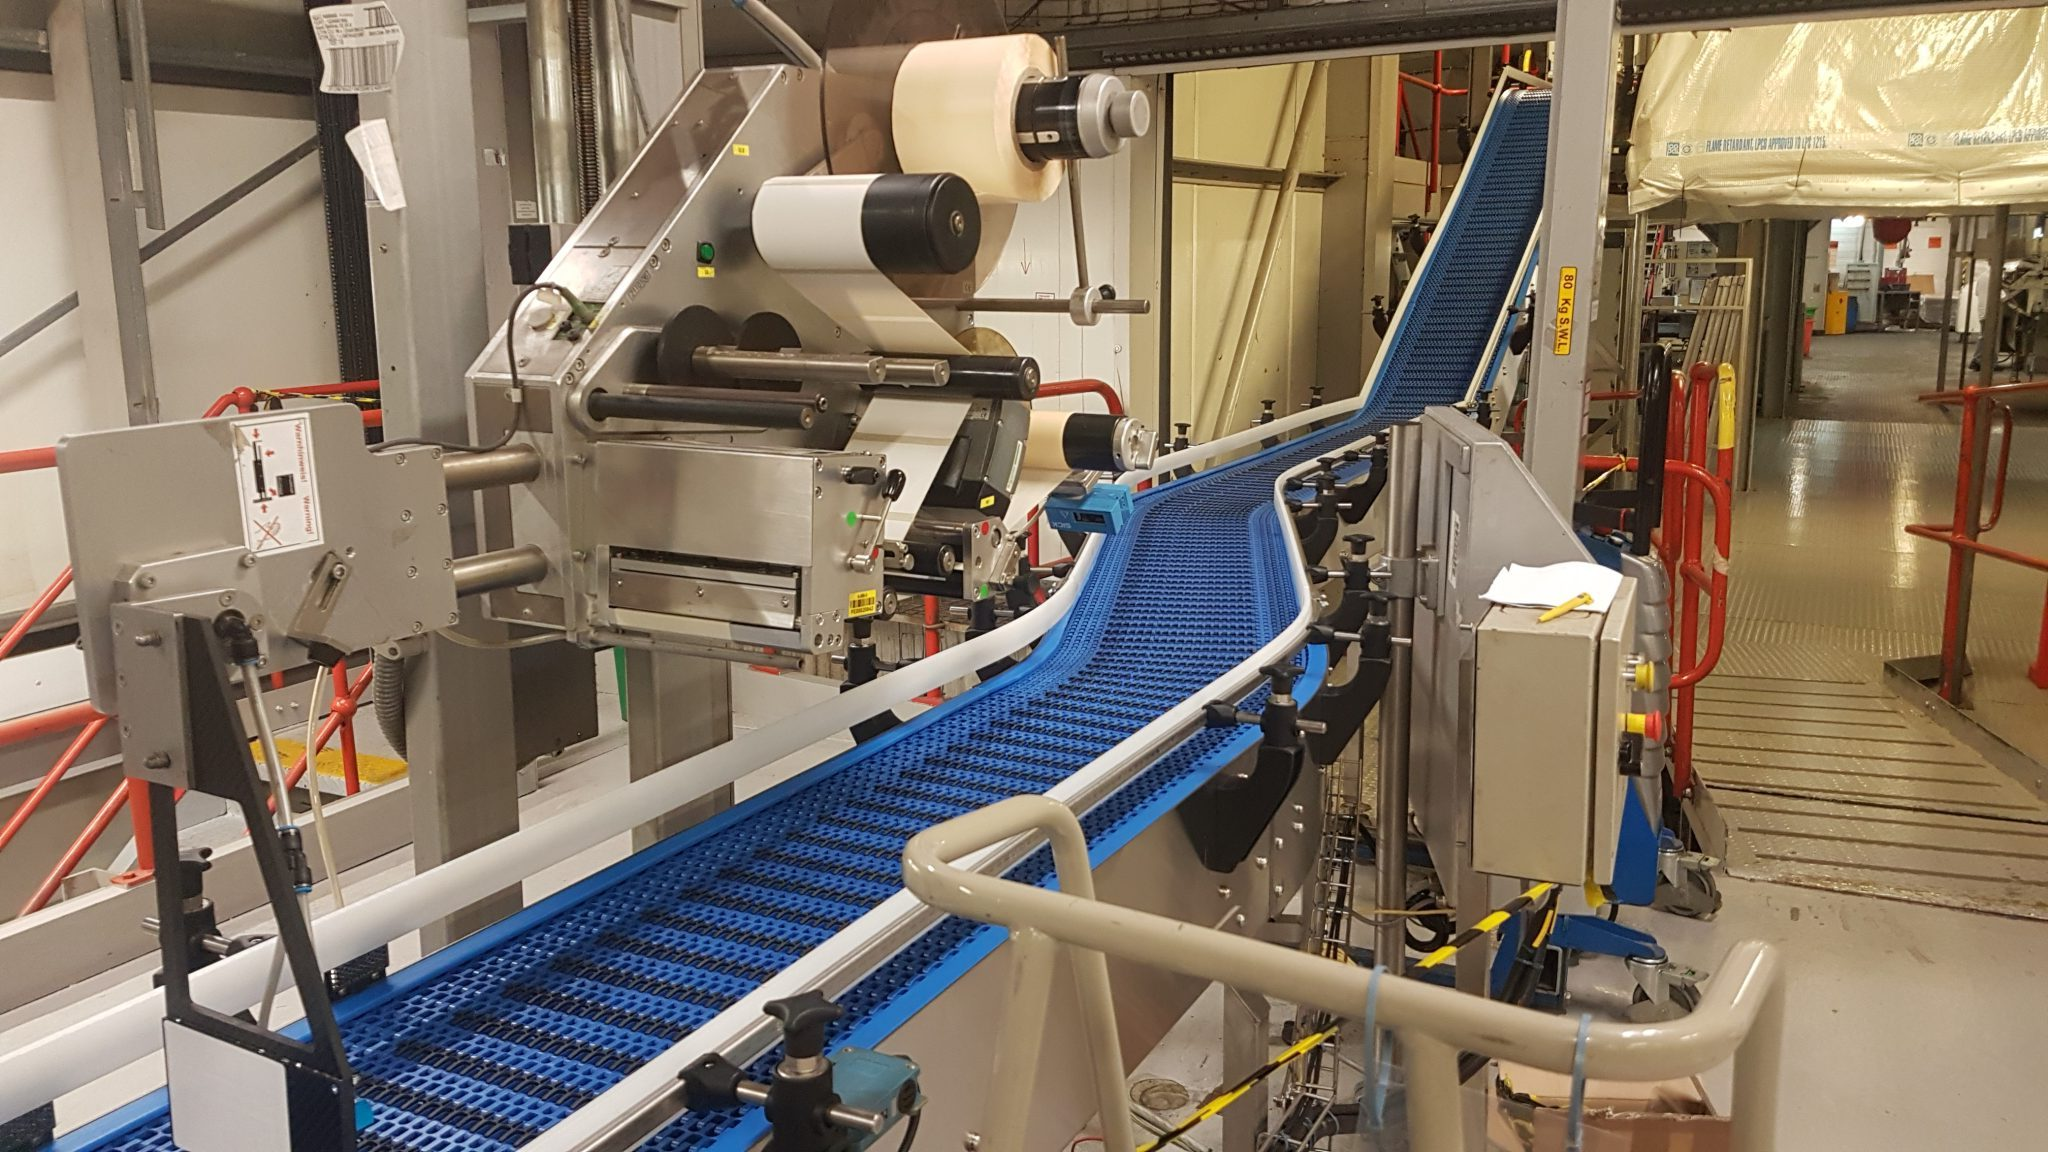 Modular Conveyor for large pet food manufacturer